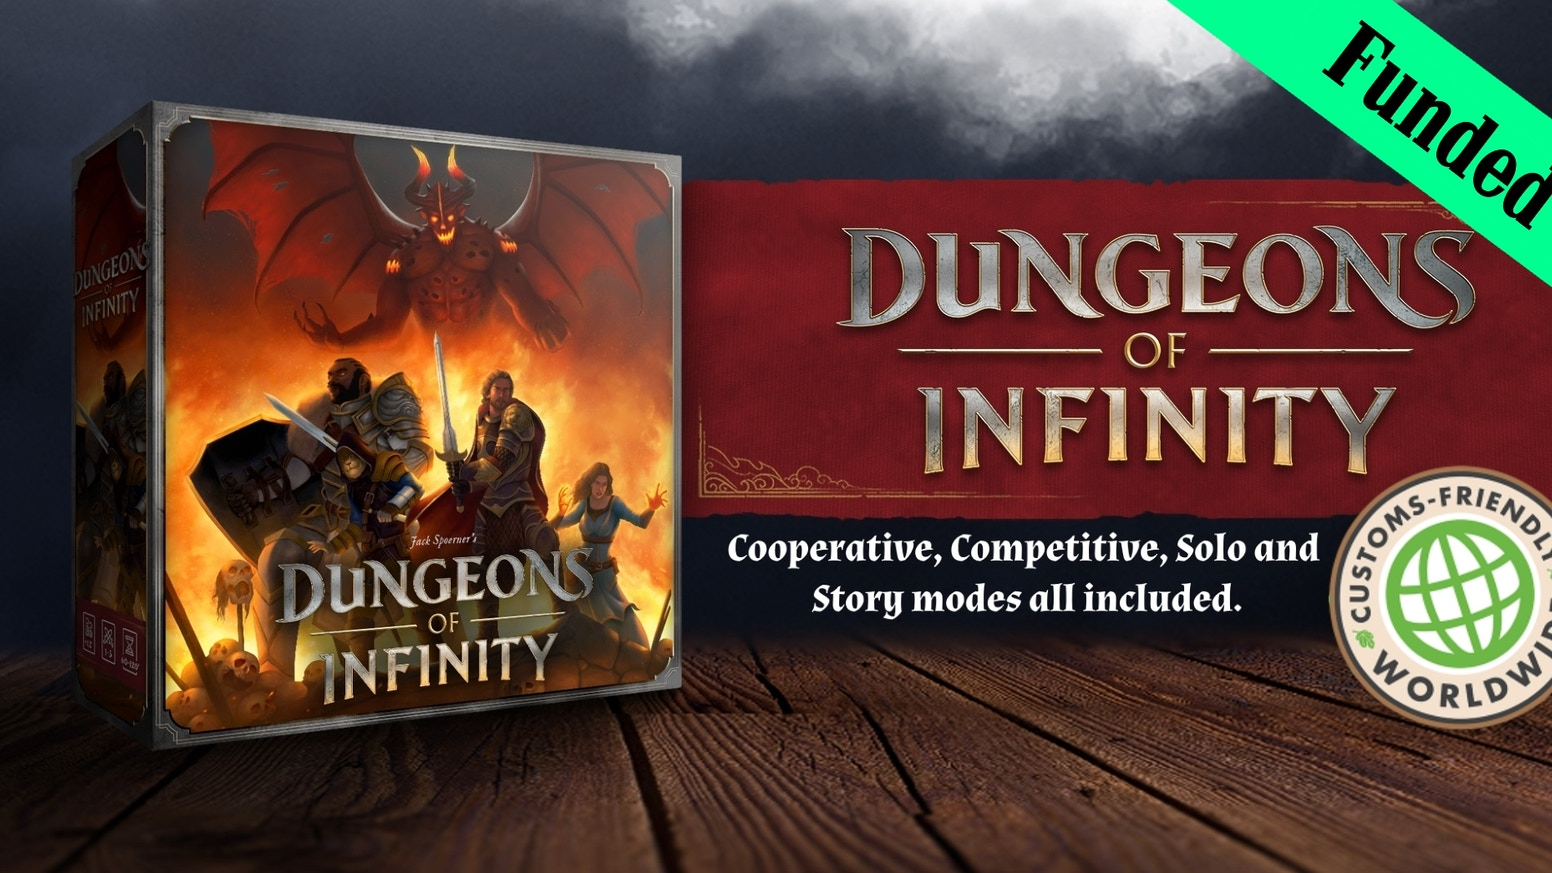 Dungeon of Infinity is a board game for 1 to 5 players. It features random dungeon creation, solo, coop, competitive or story mode!